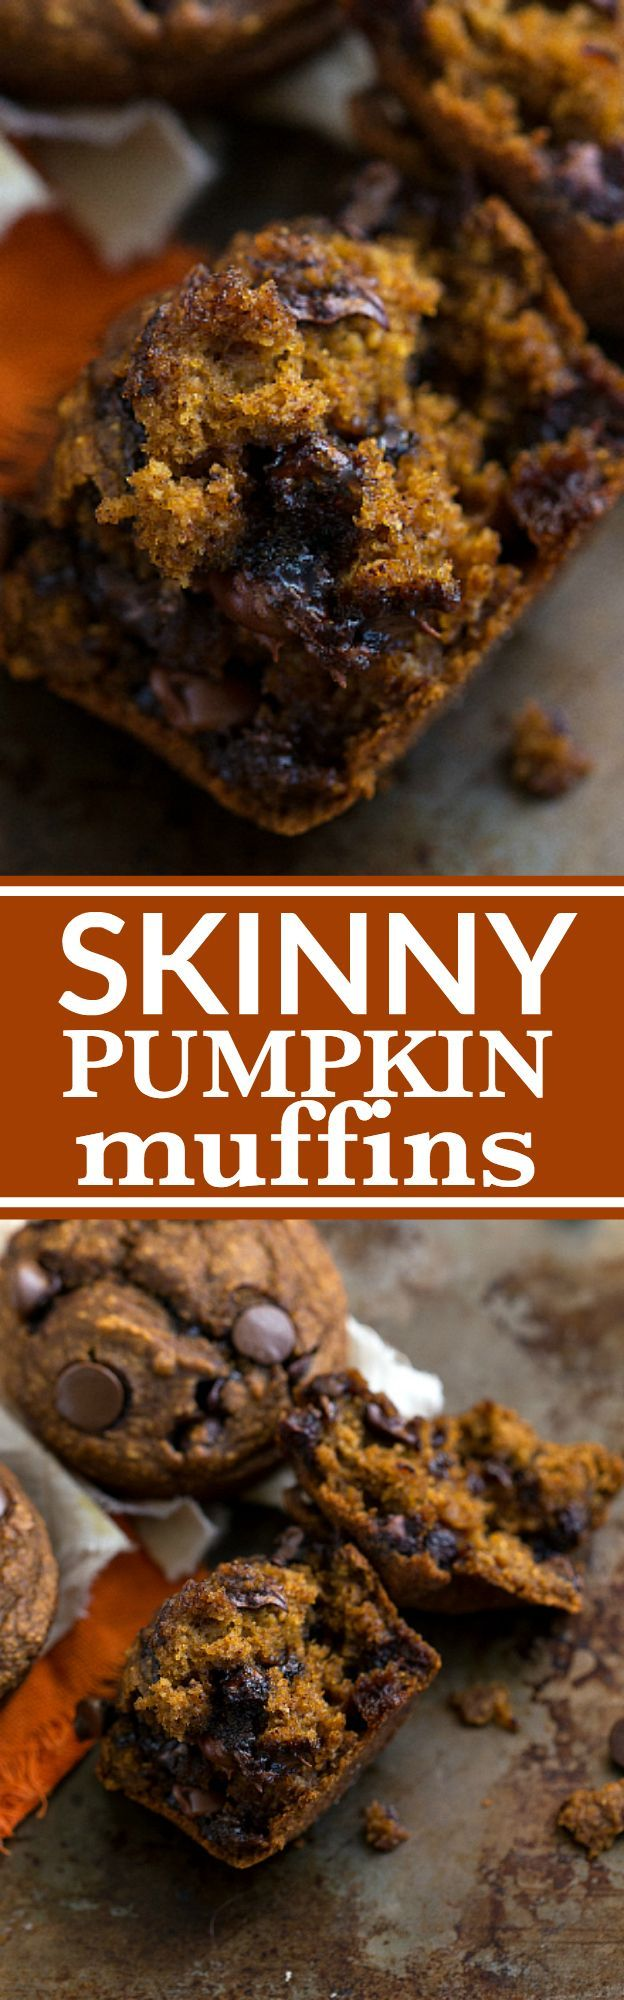 A low-calorie and healthier pumpkin chocolate-chip muffin with absolutely no…